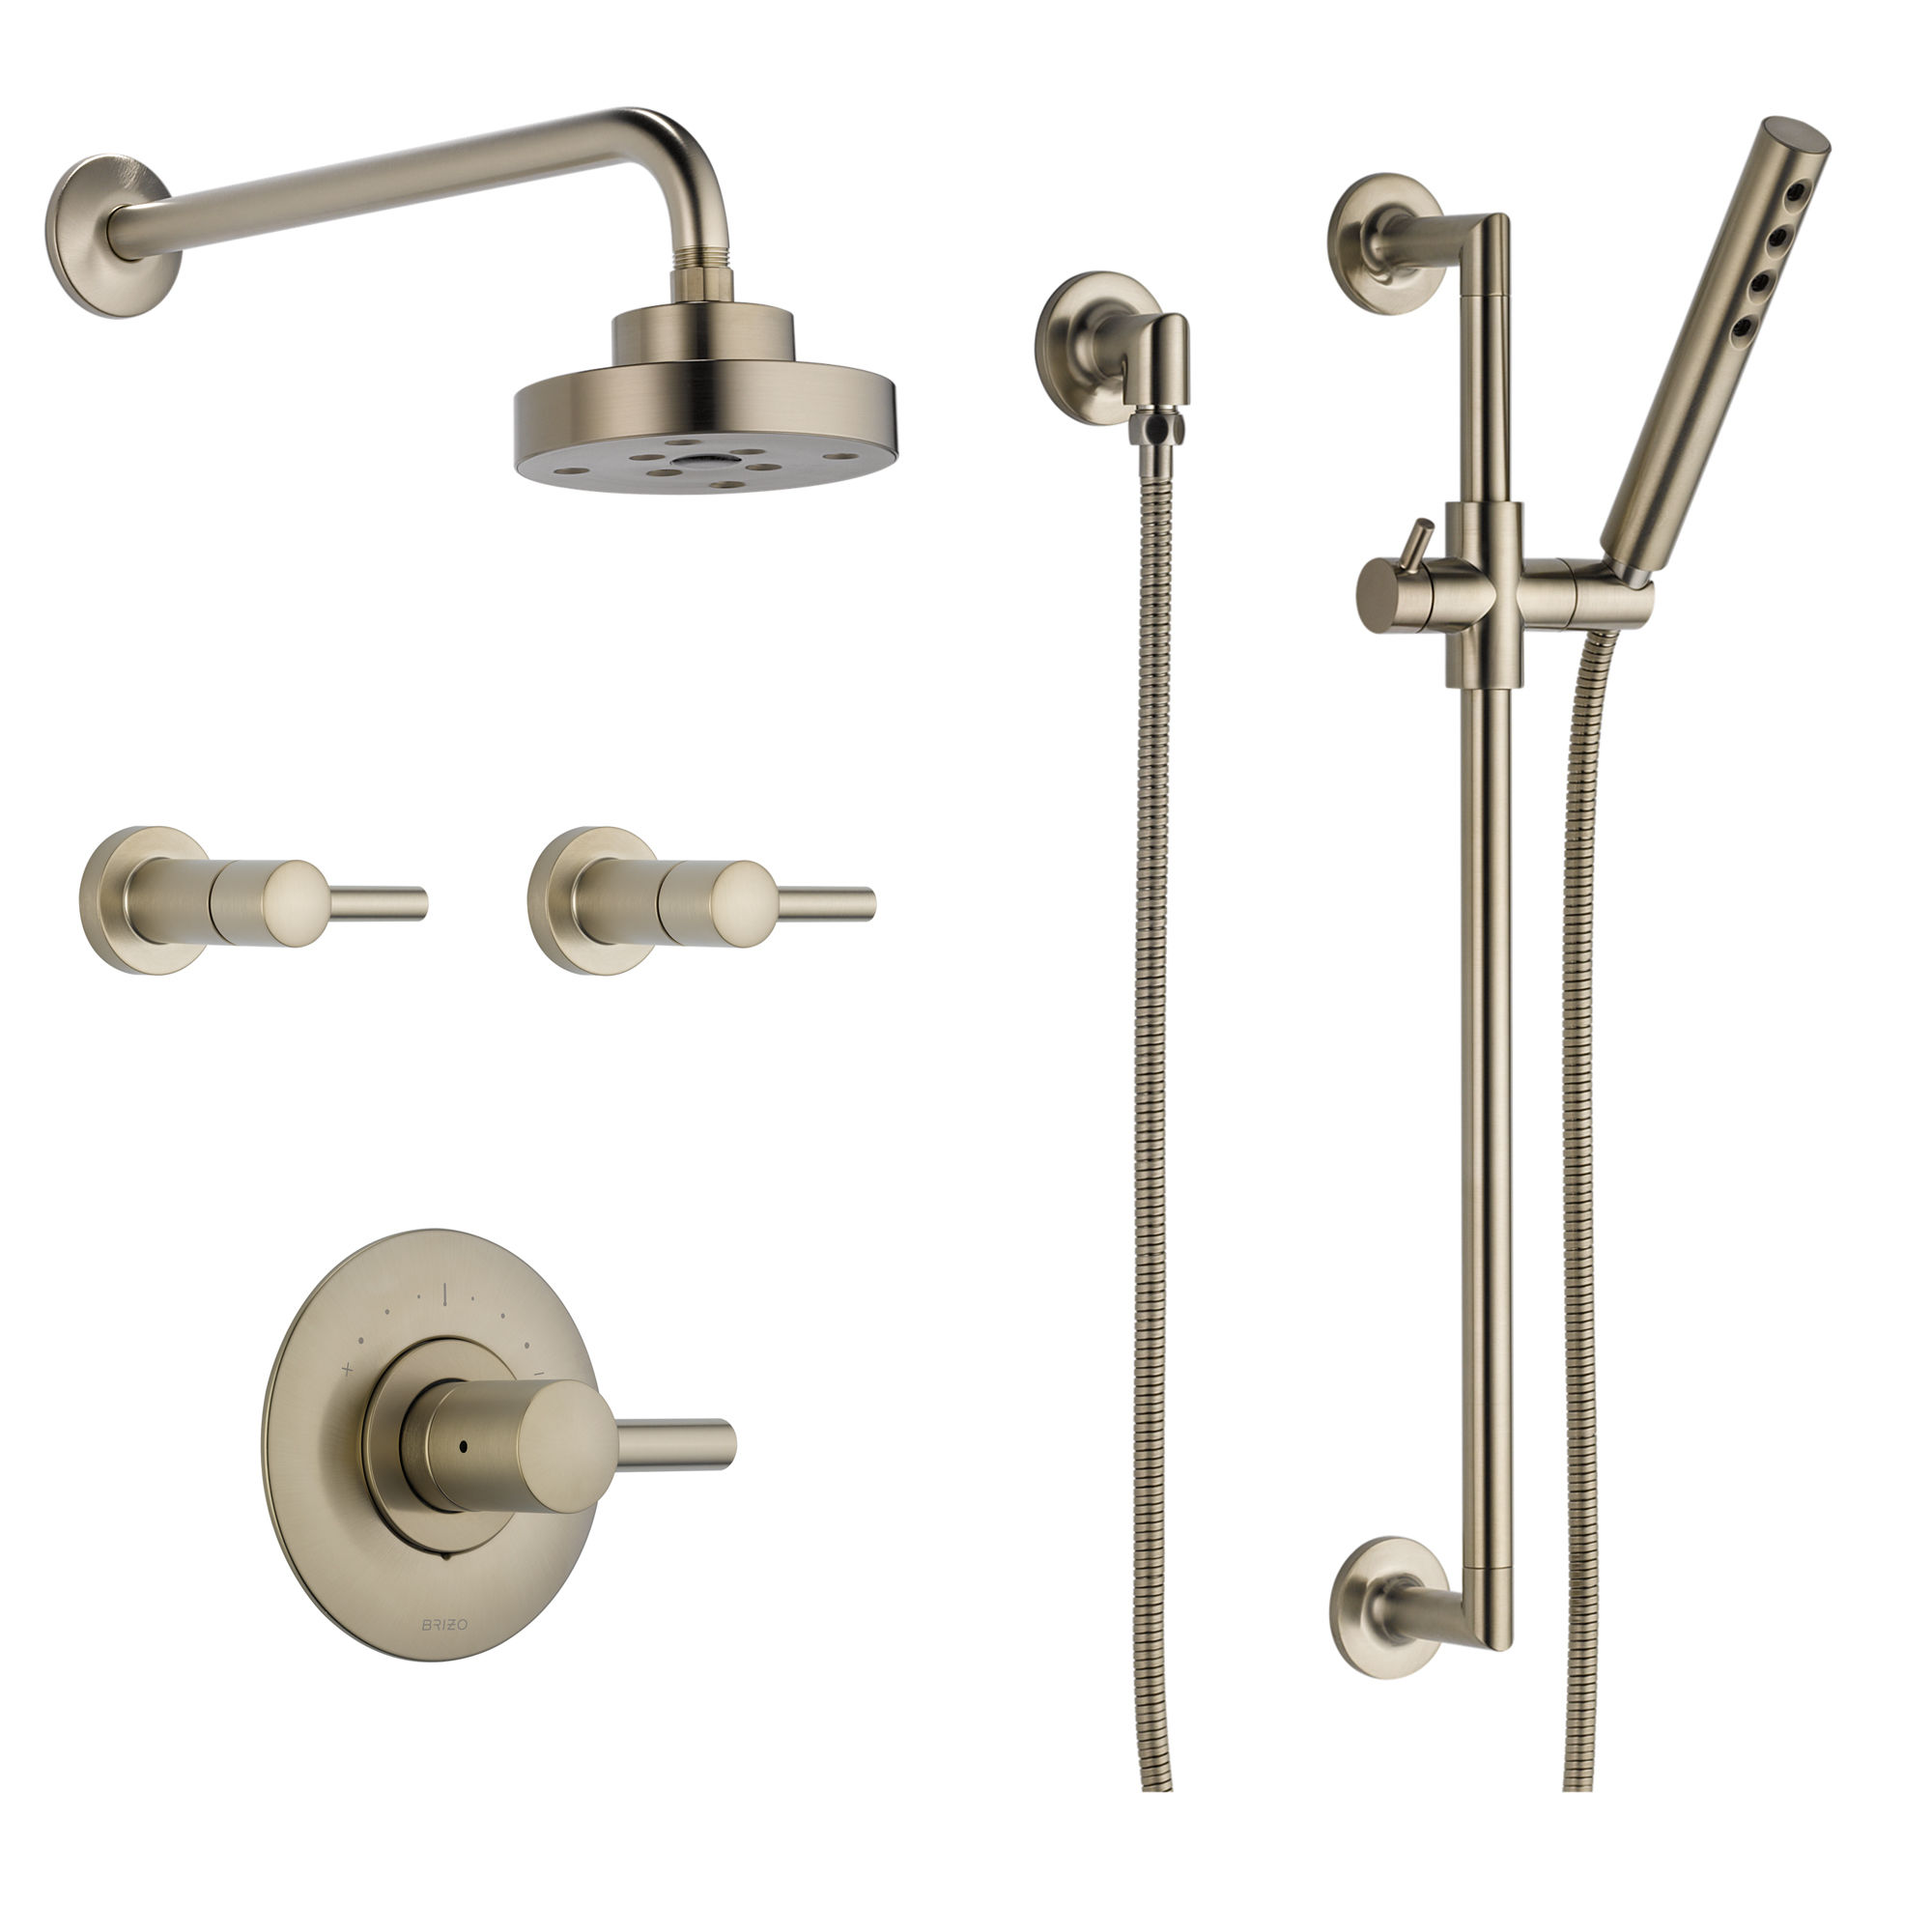 Brizo BSS-Odin-T66T02-BL Matte Black Sensori Custom Thermostatic Shower System with Showerhead, Volume Controls, and Hand Shower - Valves Included - Faucet. ...